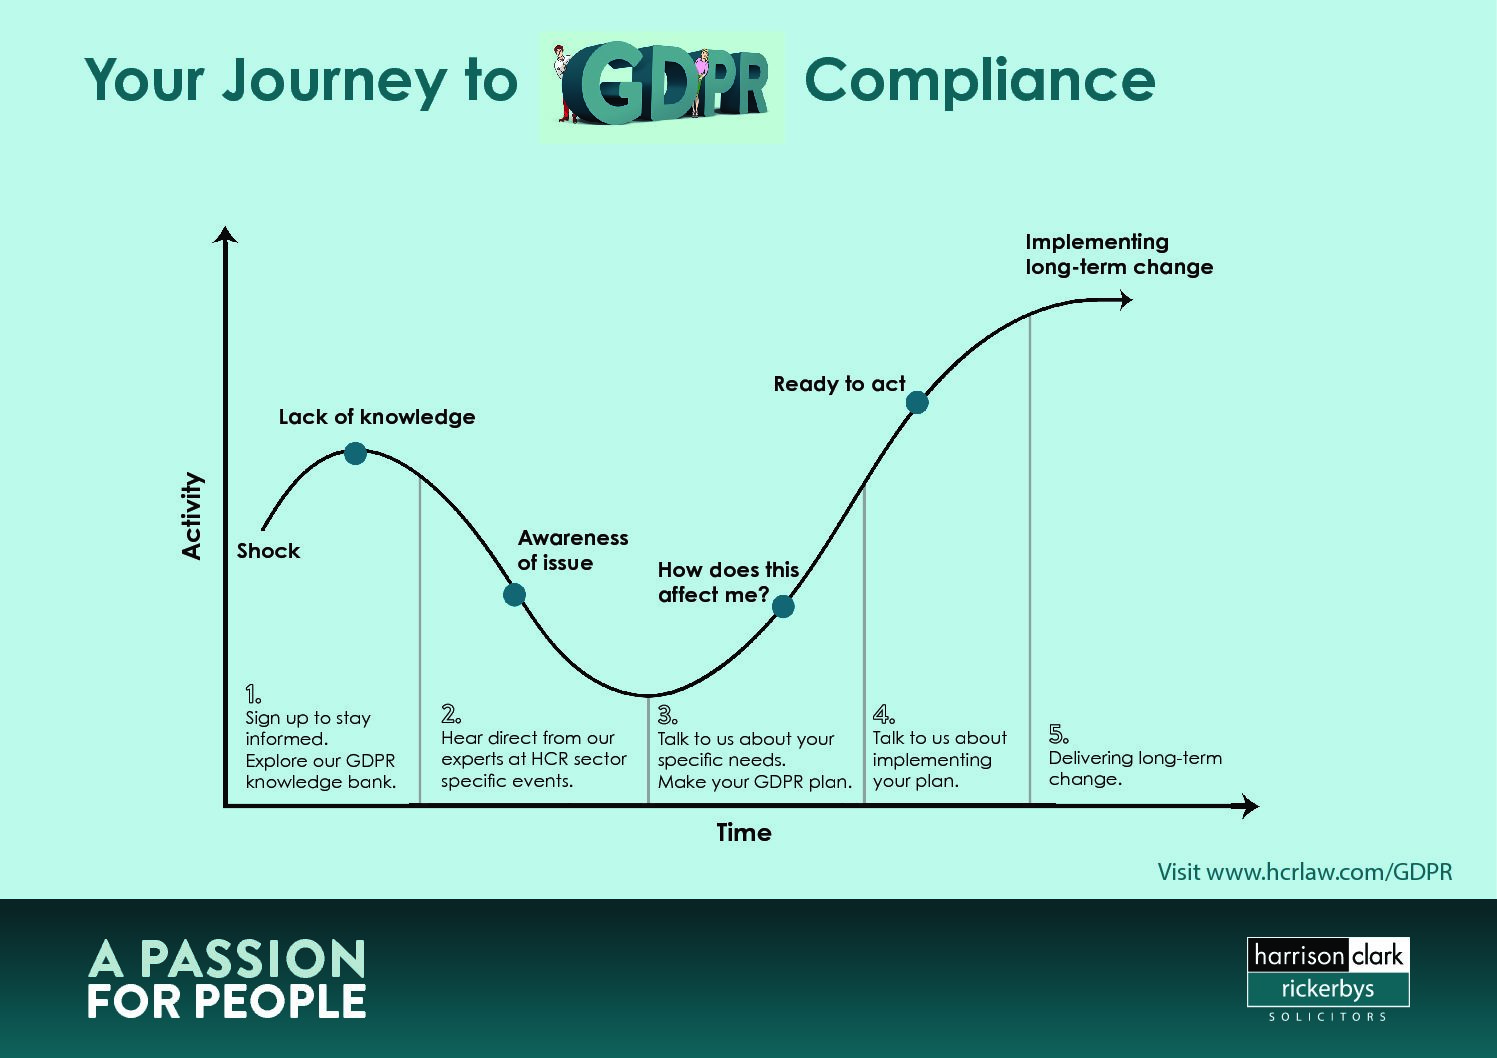 Your Journey to GDPR Compliance | Harrison Clark Rickerbys